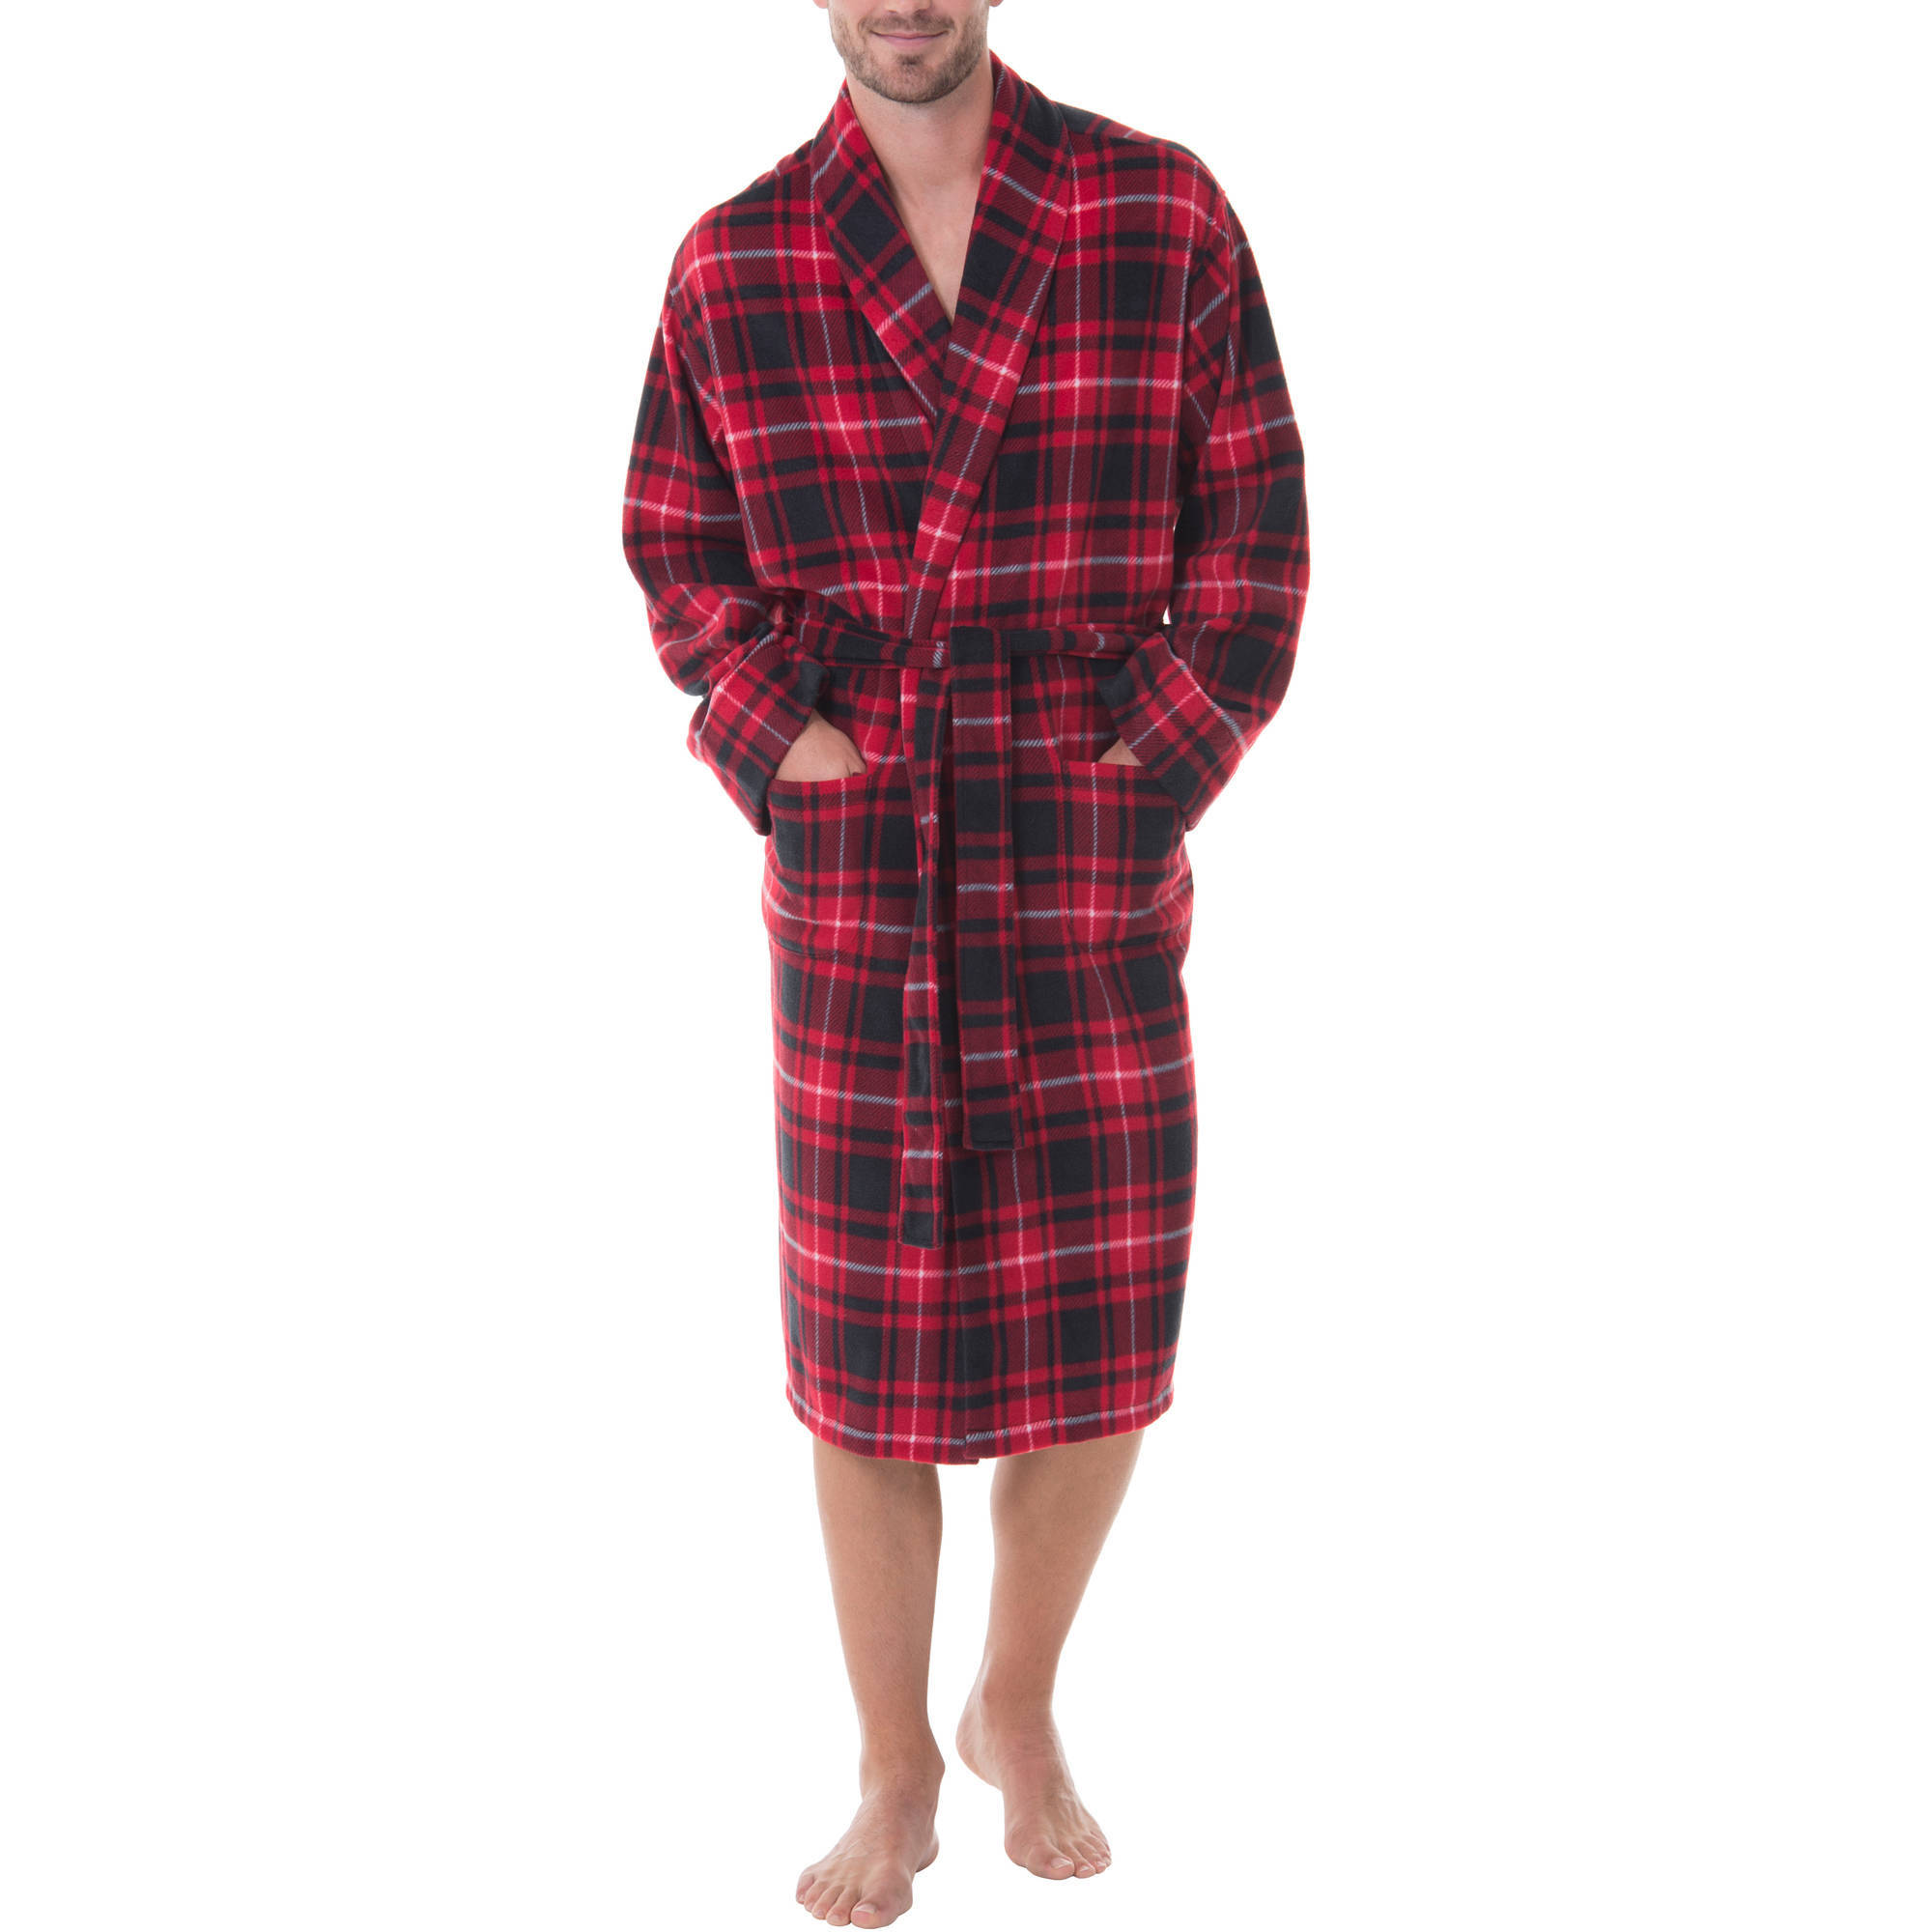 Fruit of the Loom - Men's Print Fleece Robe